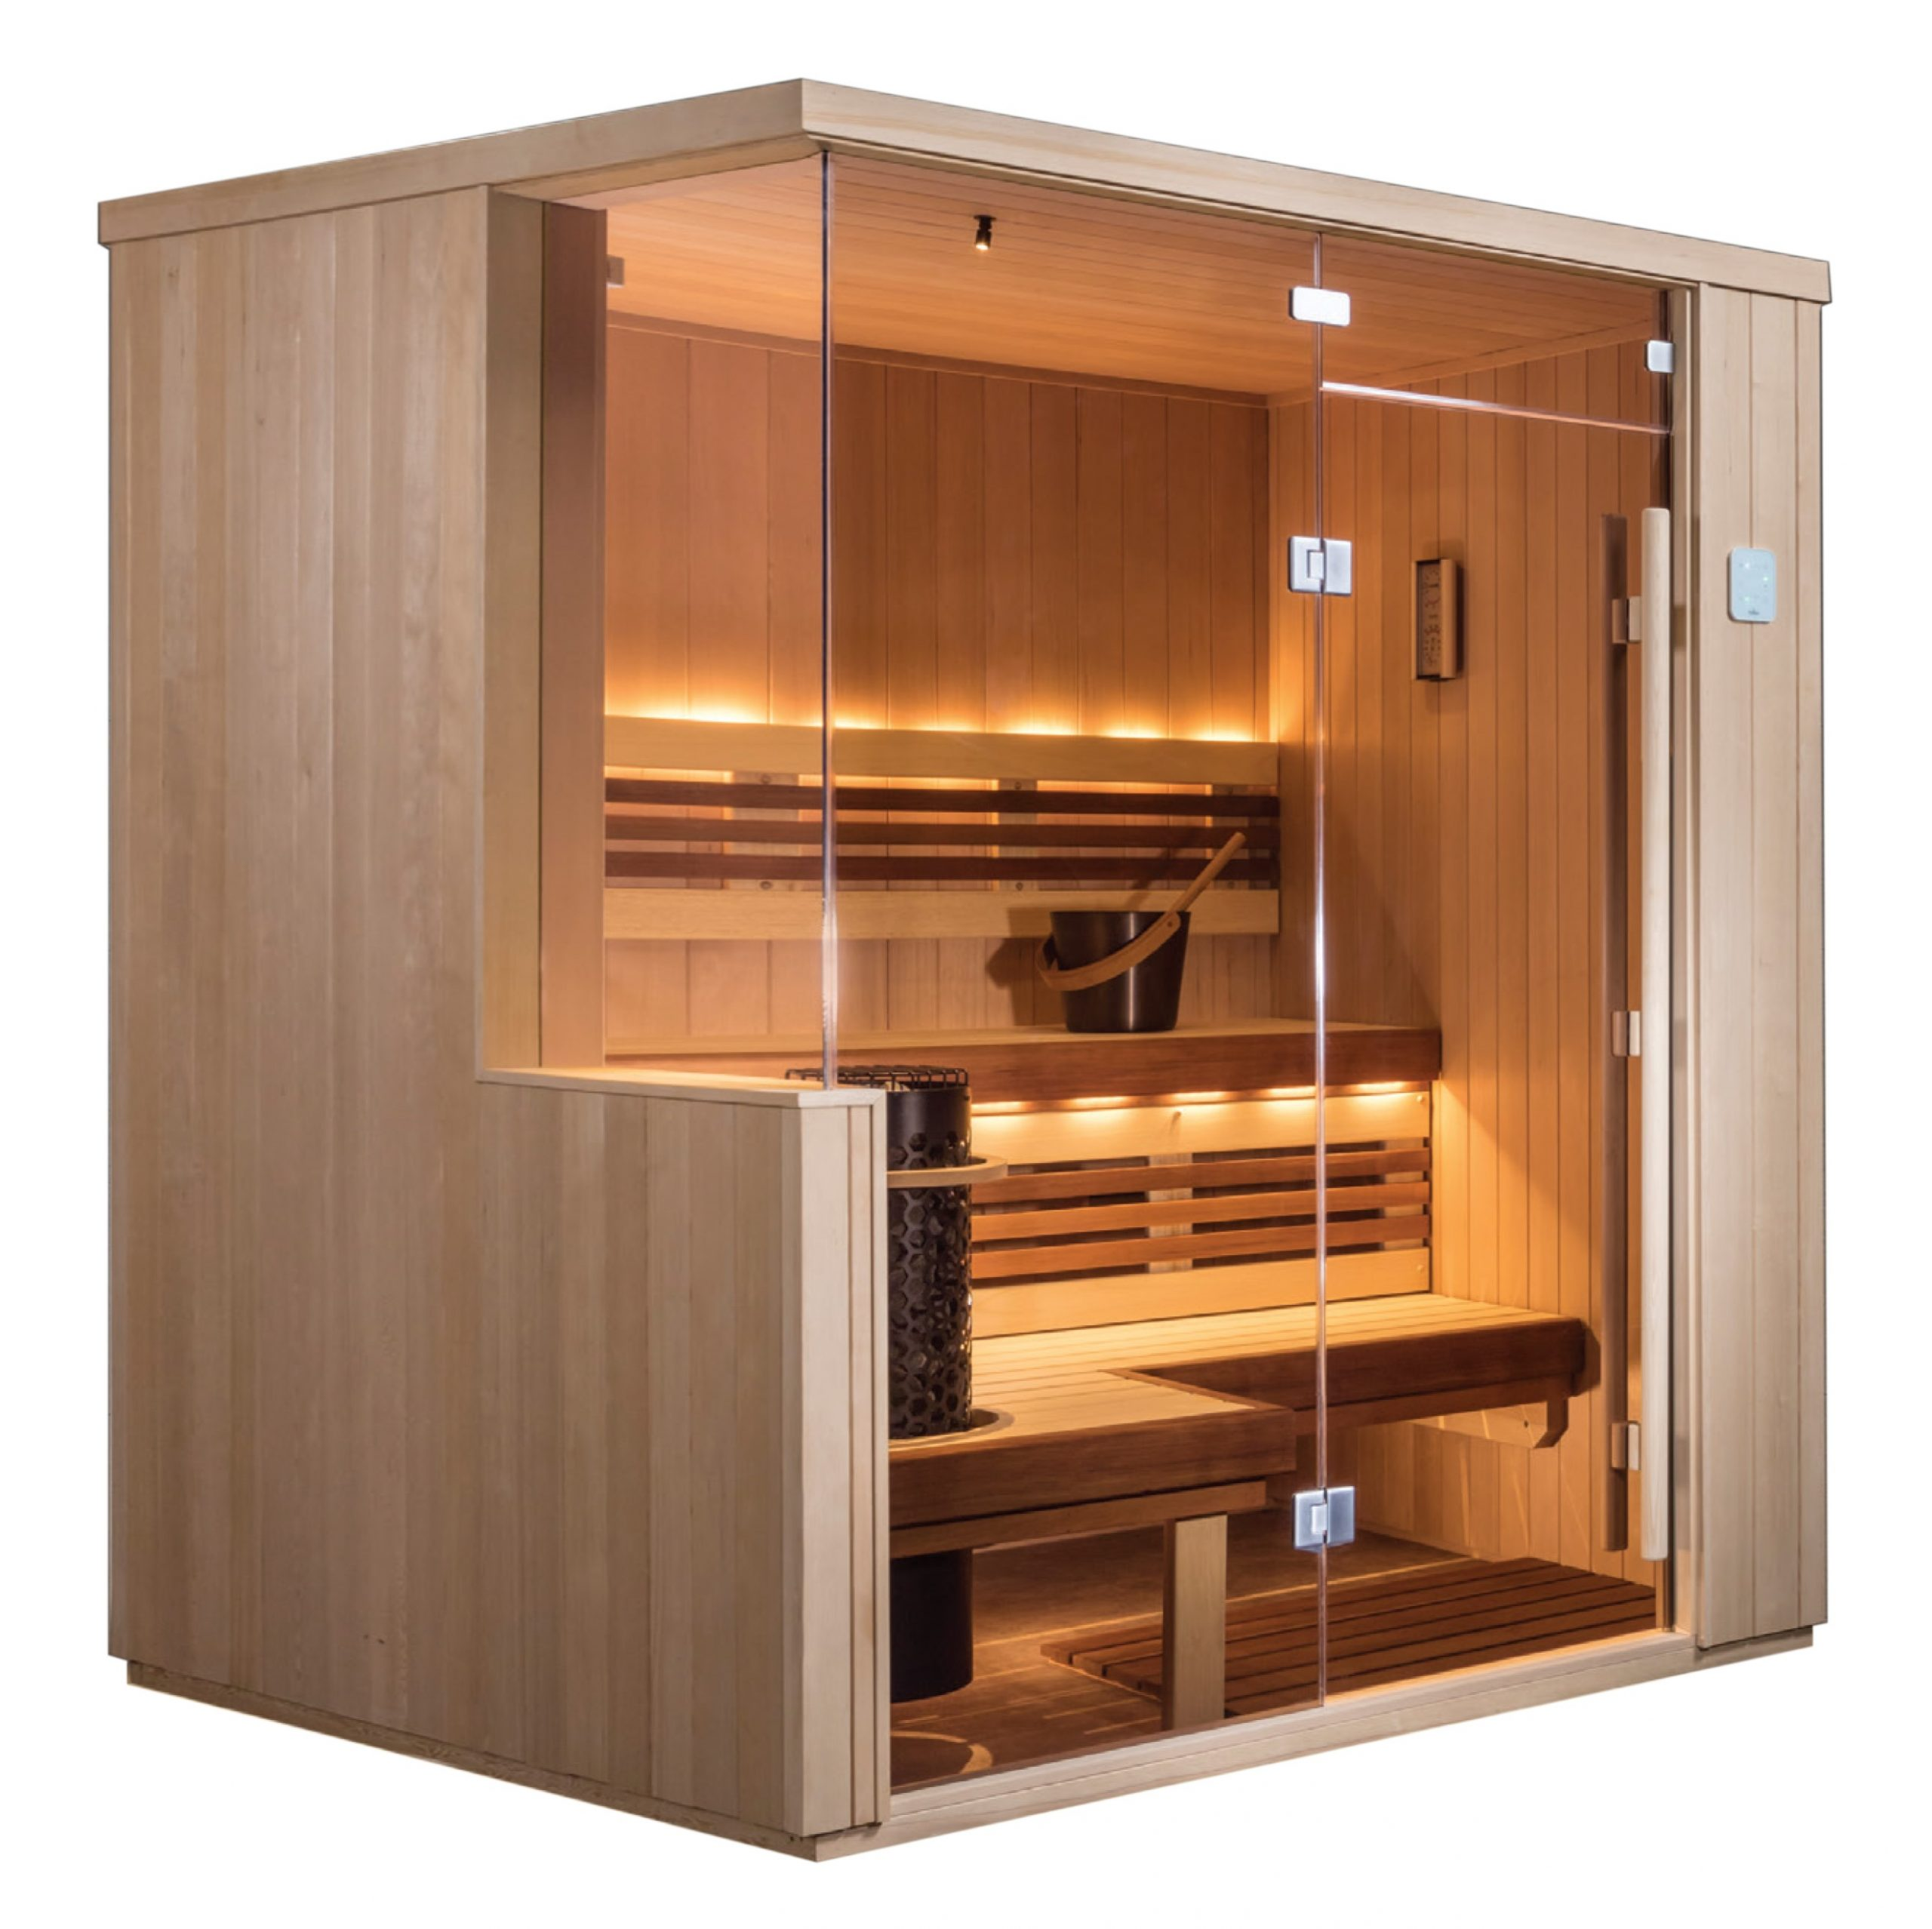 If you're a sauna lover, this sauna is for you!